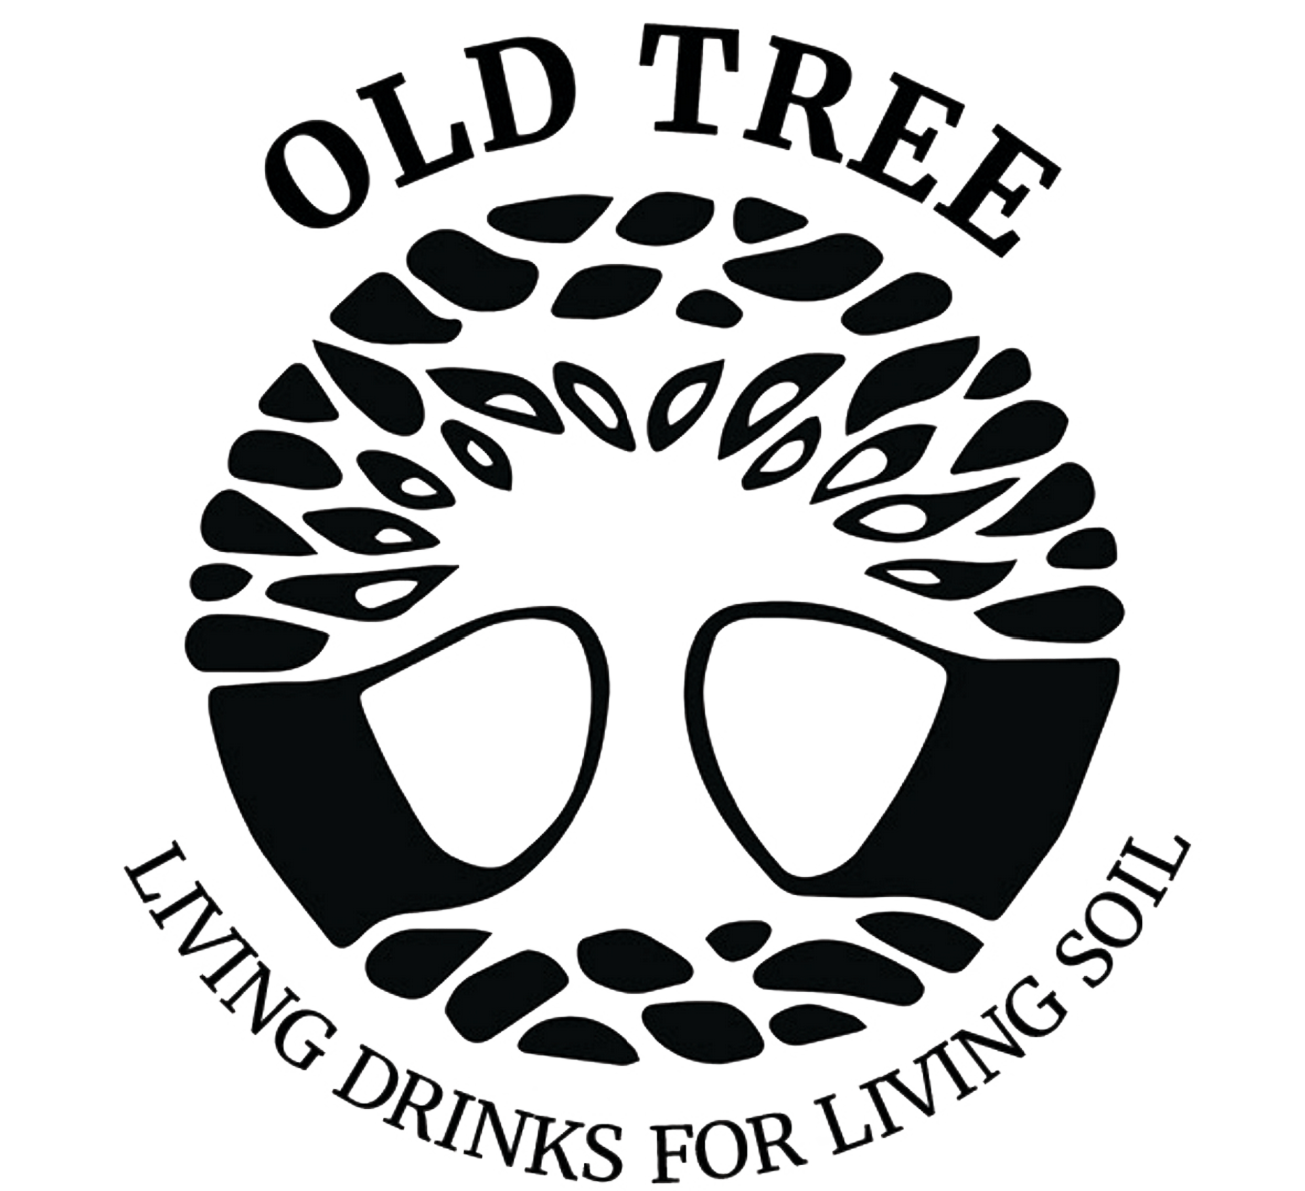 Old Tree Brewery | Live Botanical Brews in Brighton